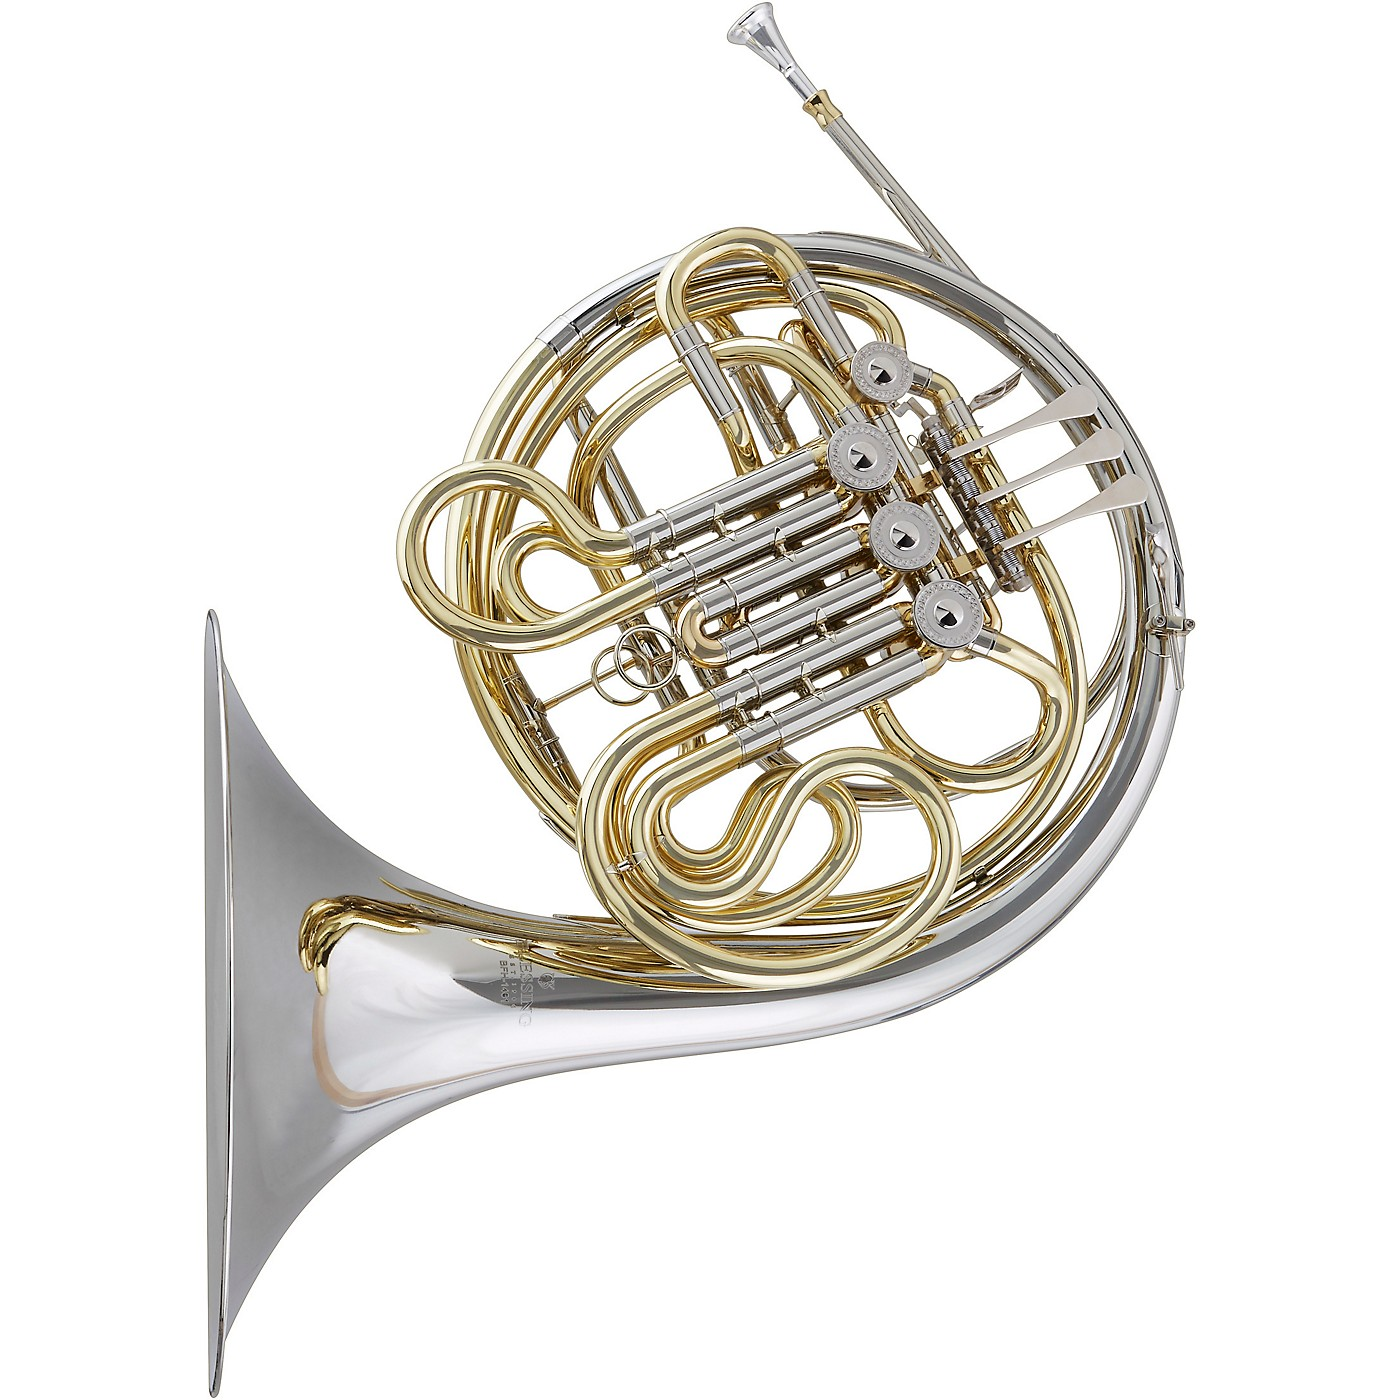 Blessing BFH-1461N Performance Series Double French Horn thumbnail